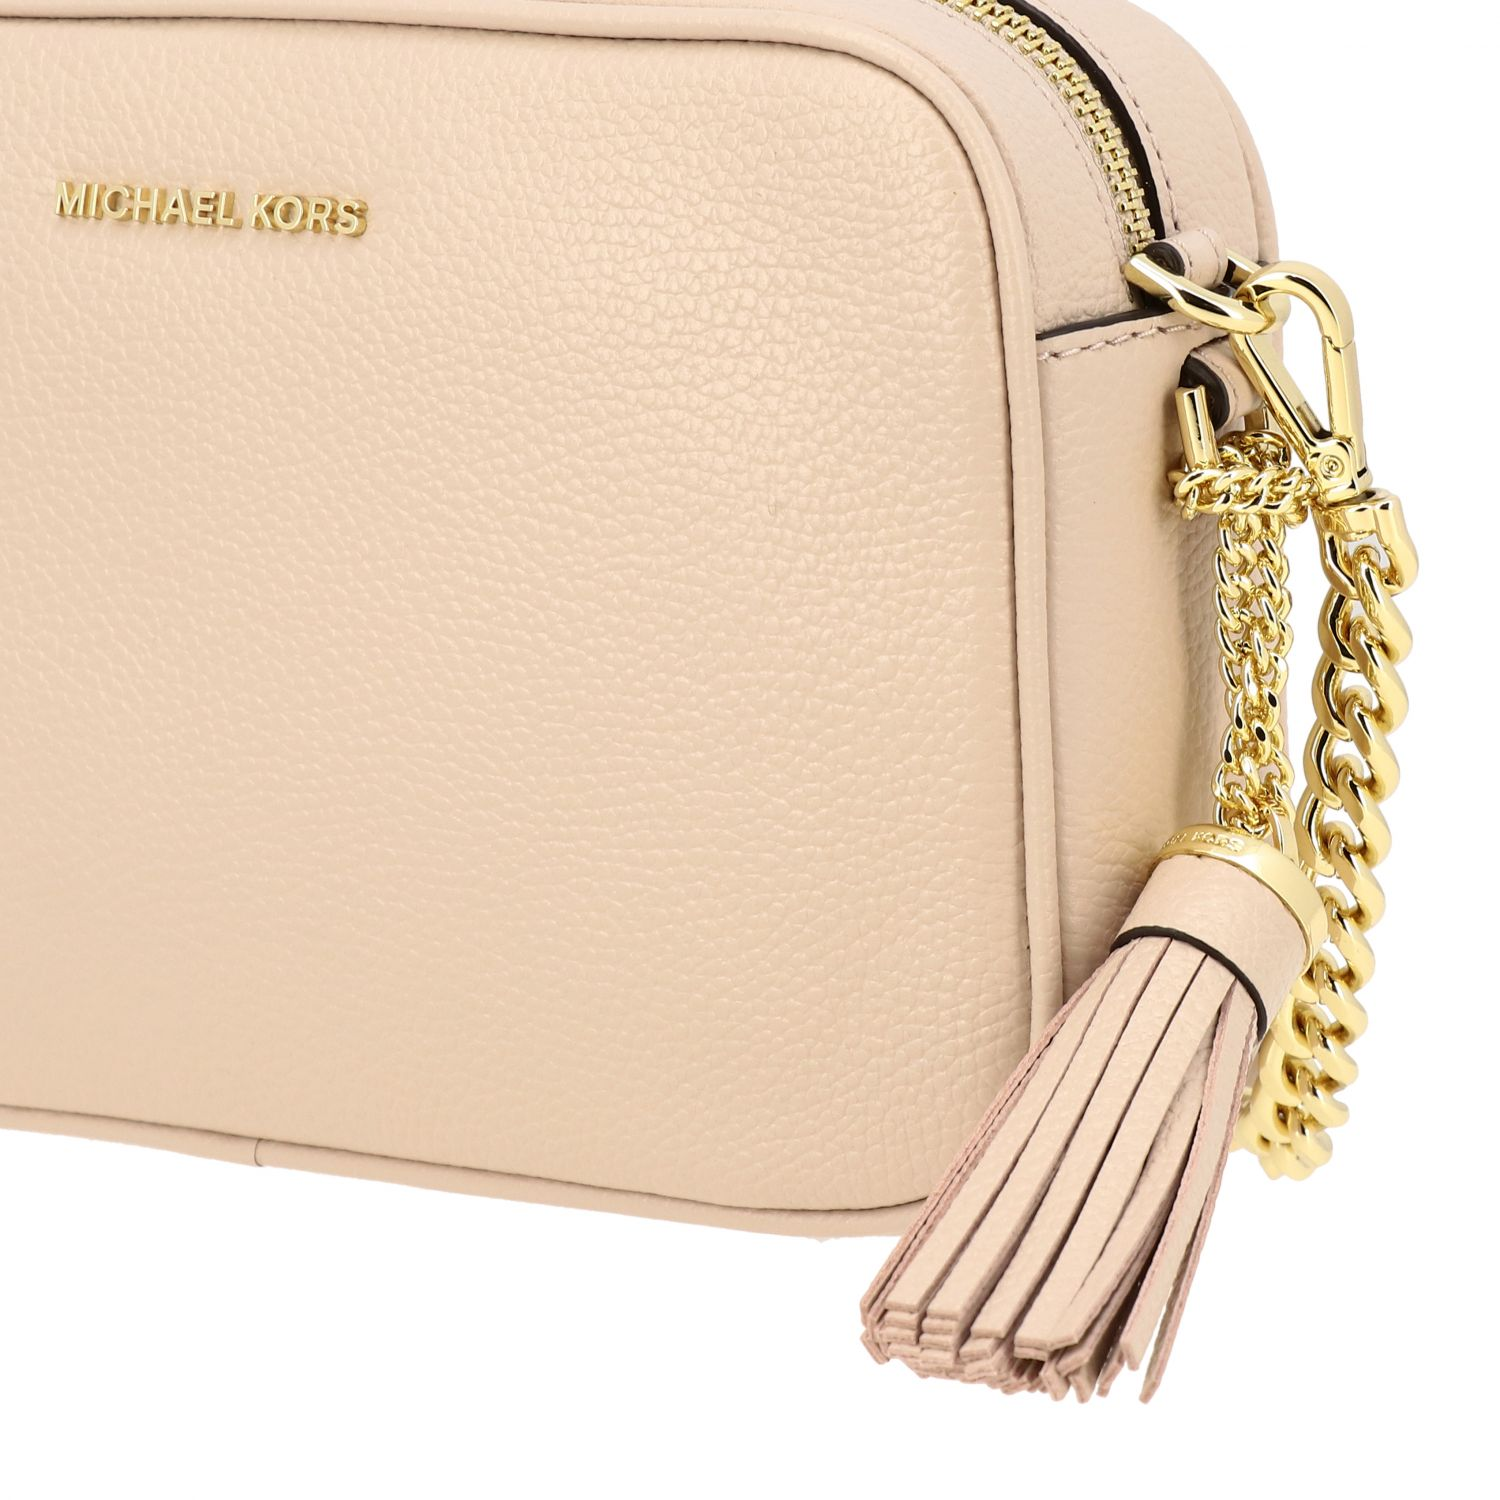 Borsa Jet Set camera bag Michael Michael Kors in pelle cipria 4